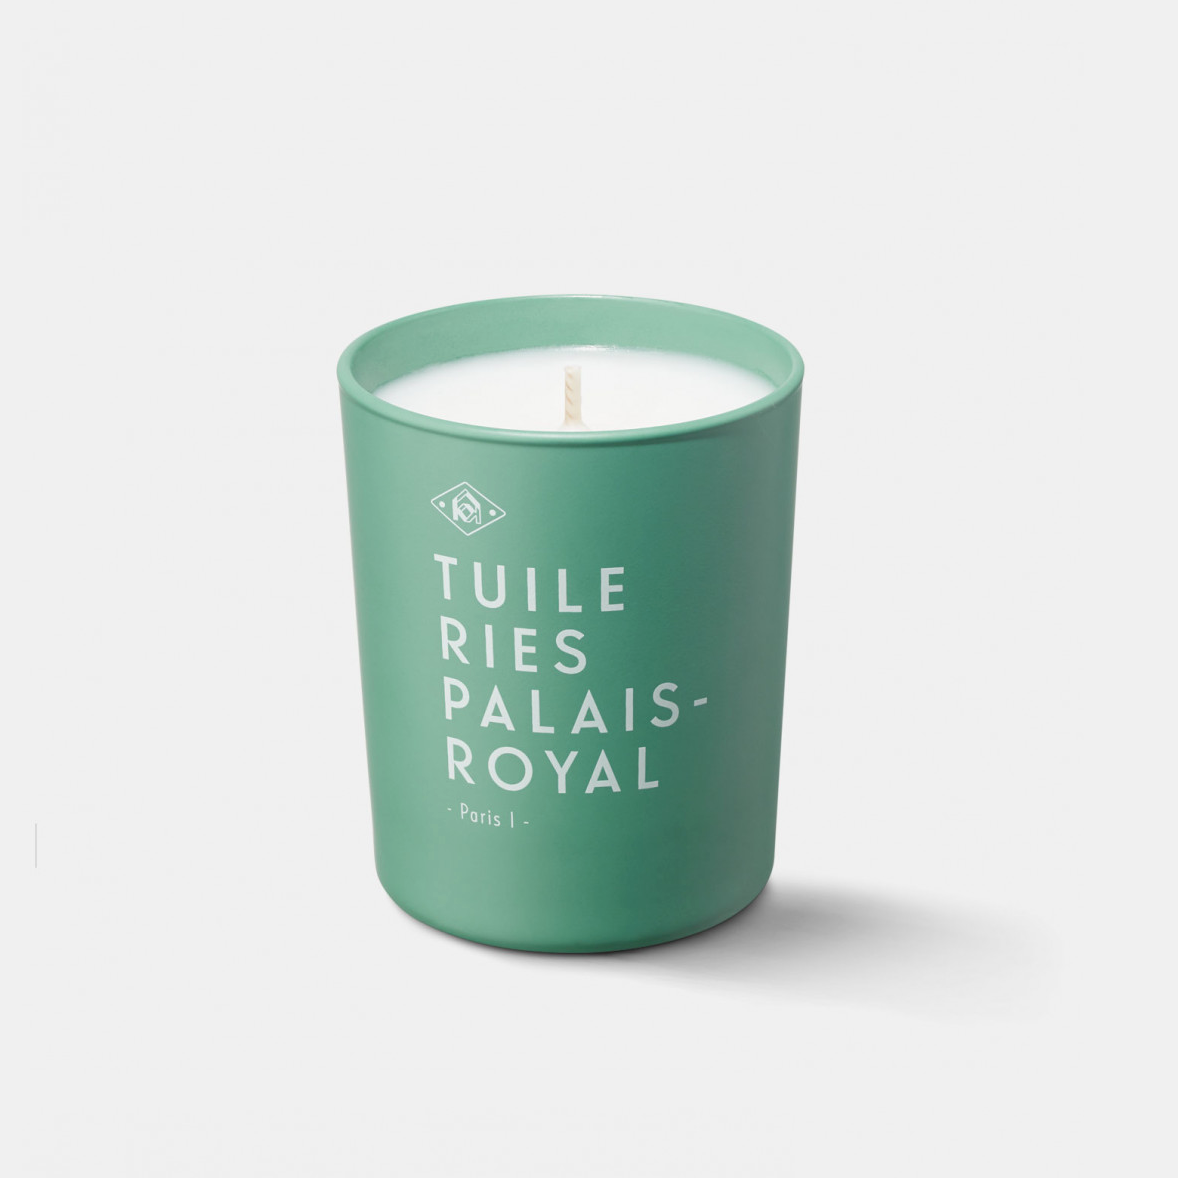 FRAGRANCED CANDLE - TUILERIES PALAIS-ROYAL